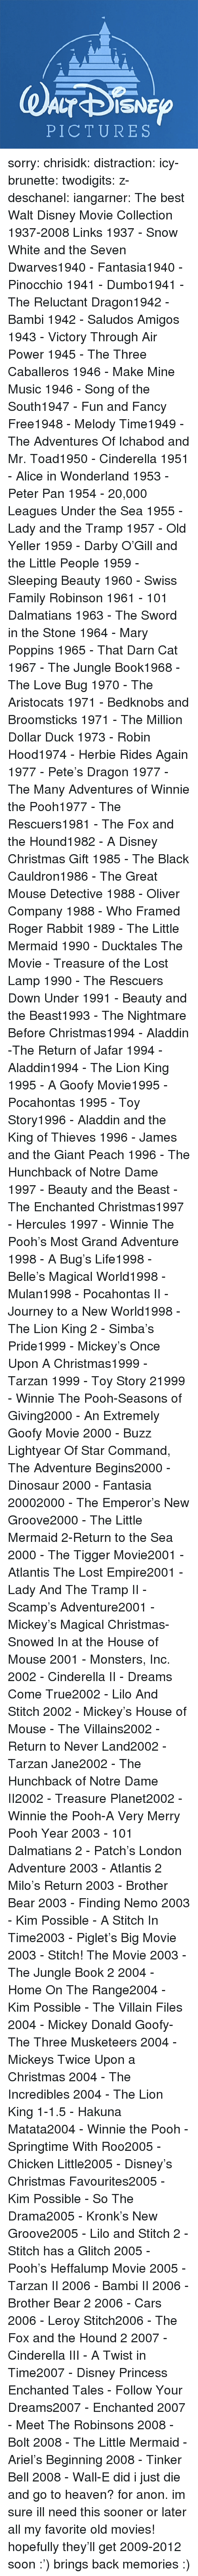 hunchback: PICTURES sorry:  chrisidk:  distraction:   icy-brunette:   twodigits:   z-deschanel:   iangarner:   The best Walt Disney Movie Collection 1937-2008 Links     1937 - Snow White and the Seven Dwarves1940 - Fantasia1940 - Pinocchio 1941 - Dumbo1941 - The Reluctant Dragon1942 - Bambi 1942 - Saludos Amigos 1943 - Victory Through Air Power 1945 - The Three Caballeros 1946 - Make Mine Music 1946 - Song of the South1947 - Fun and Fancy Free1948 - Melody Time1949 - The Adventures Of Ichabod and Mr. Toad1950 - Cinderella 1951 - Alice in Wonderland 1953 - Peter Pan 1954 - 20,000 Leagues Under the Sea 1955 - Lady and the Tramp 1957 - Old Yeller 1959 - Darby O'Gill and the Little People 1959 - Sleeping Beauty 1960 - Swiss Family Robinson 1961 - 101 Dalmatians 1963 - The Sword in the Stone 1964 - Mary Poppins 1965 - That Darn Cat 1967 - The Jungle Book1968 - The Love Bug 1970 - The Aristocats 1971 - Bedknobs and Broomsticks 1971 - The Million Dollar Duck 1973 - Robin Hood1974 - Herbie Rides Again 1977 - Pete's Dragon 1977 - The Many Adventures of Winnie the Pooh1977 - The Rescuers1981 - The Fox and the Hound1982 - A Disney Christmas Gift 1985 - The Black Cauldron1986 - The Great Mouse Detective 1988 - Oliver  Company 1988 - Who Framed Roger Rabbit 1989 - The Little Mermaid 1990 - Ducktales The Movie - Treasure of the Lost Lamp 1990 - The Rescuers Down Under 1991 - Beauty and the Beast1993 - The Nightmare Before Christmas1994 - Aladdin -The Return of Jafar 1994 - Aladdin1994 - The Lion King 1995 - A Goofy Movie1995 - Pocahontas 1995 - Toy Story1996 - Aladdin and the King of Thieves 1996 - James and the Giant Peach 1996 - The Hunchback of Notre Dame 1997 - Beauty and the Beast - The Enchanted Christmas1997 - Hercules 1997 - Winnie The Pooh's Most Grand Adventure 1998 - A Bug's Life1998 - Belle's Magical World1998 - Mulan1998 - Pocahontas II - Journey to a New World1998 - The Lion King 2 - Simba's Pride1999 - Mickey's Once Upon A Christmas1999 - Tarzan 1999 - Toy Story 21